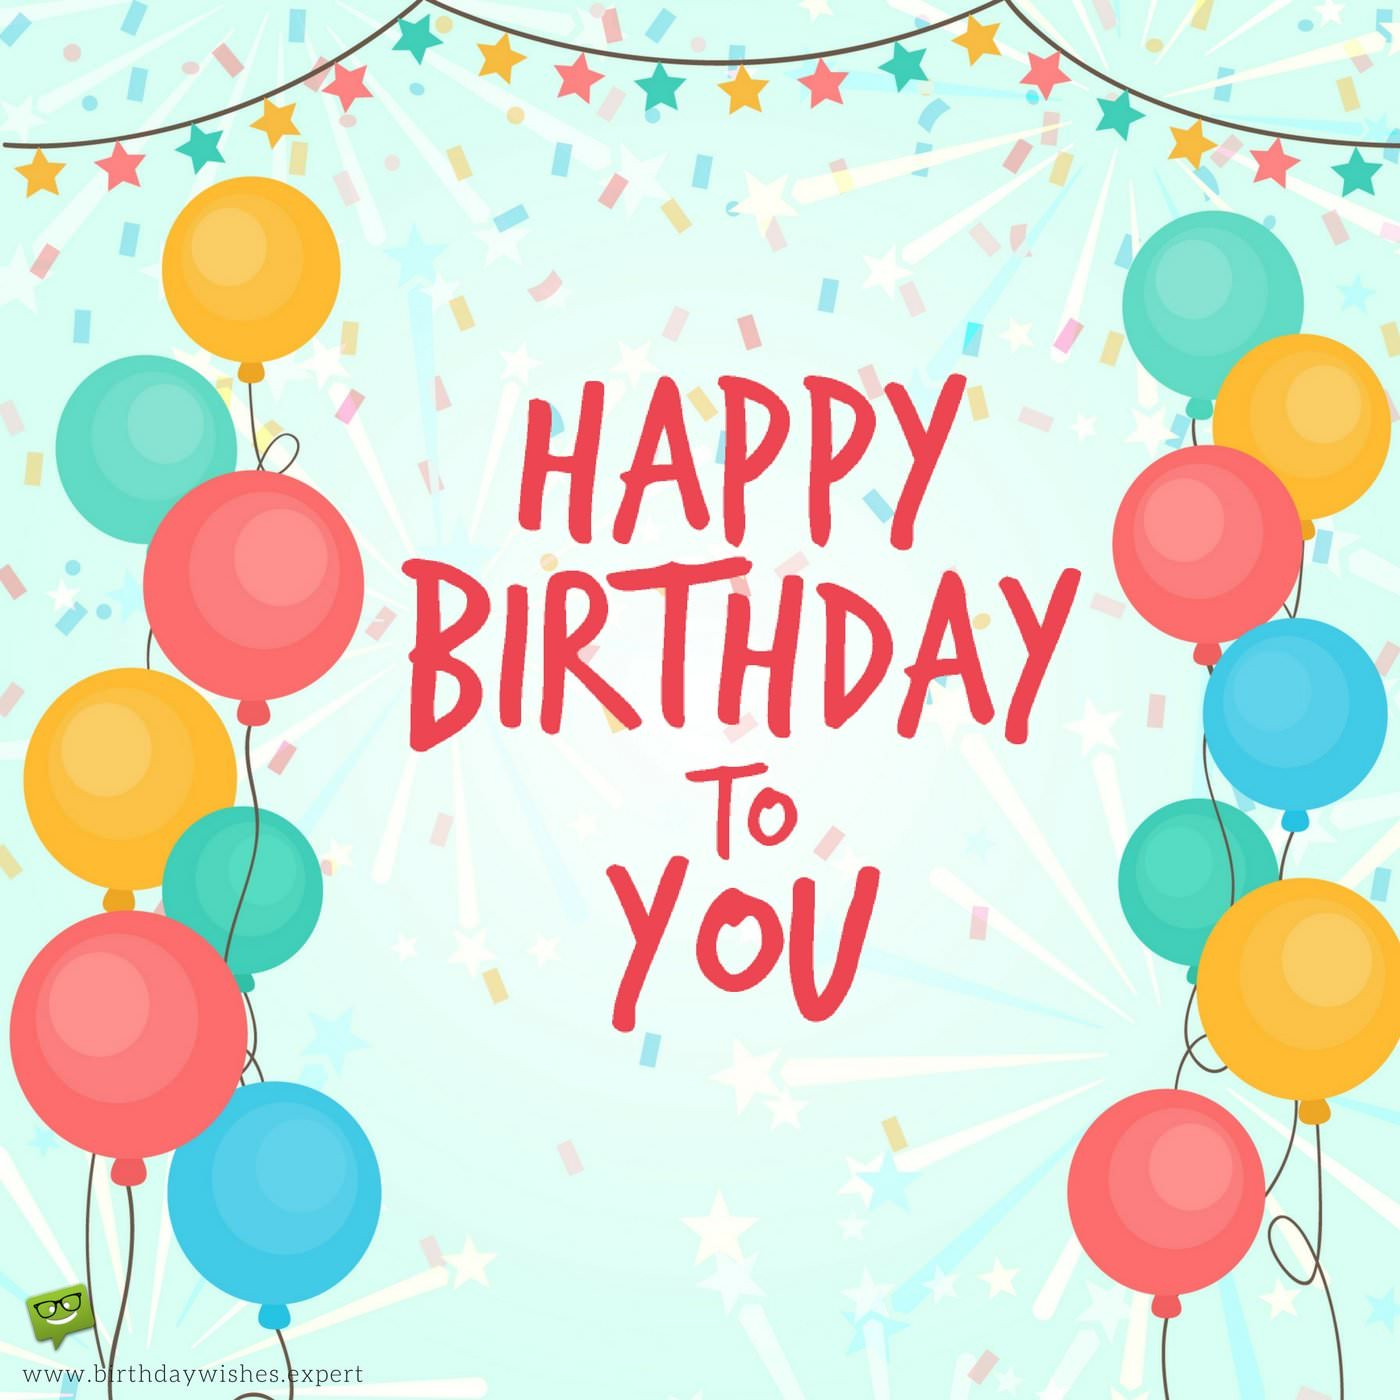 Best ideas about Special Birthday Wishes . Save or Pin The Coolest Birthday Wishes for a Special Friend Now.